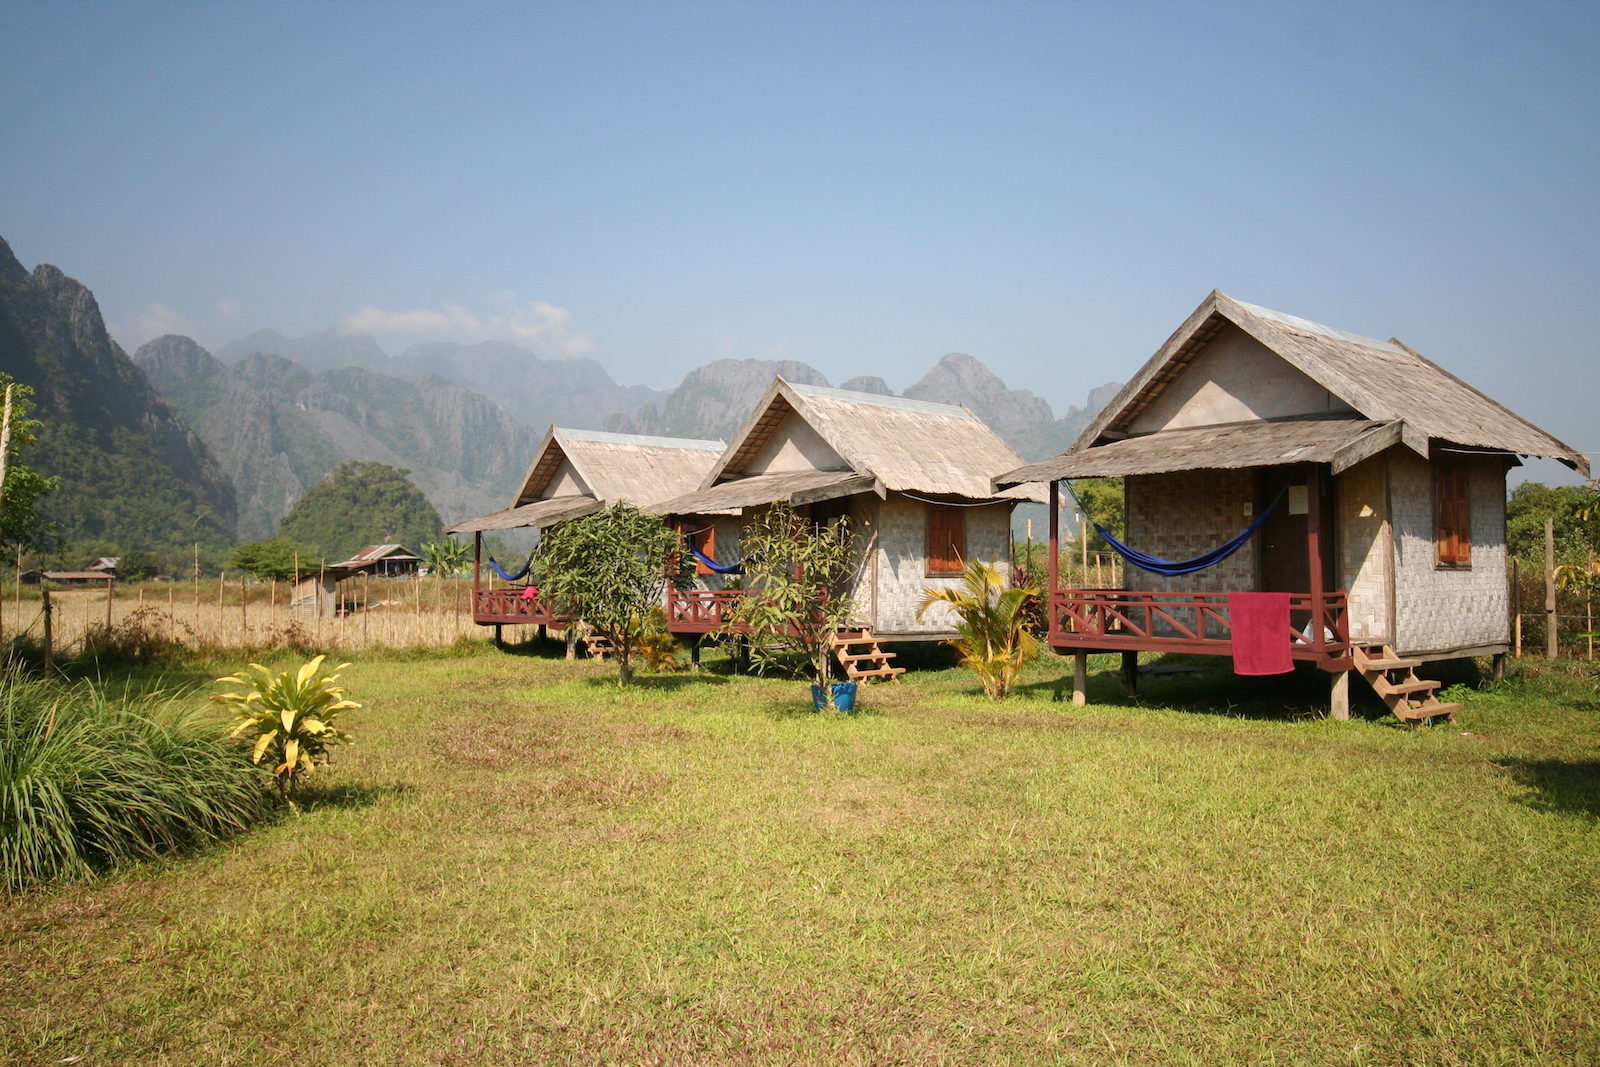 The Otherside Bungalows, Laos